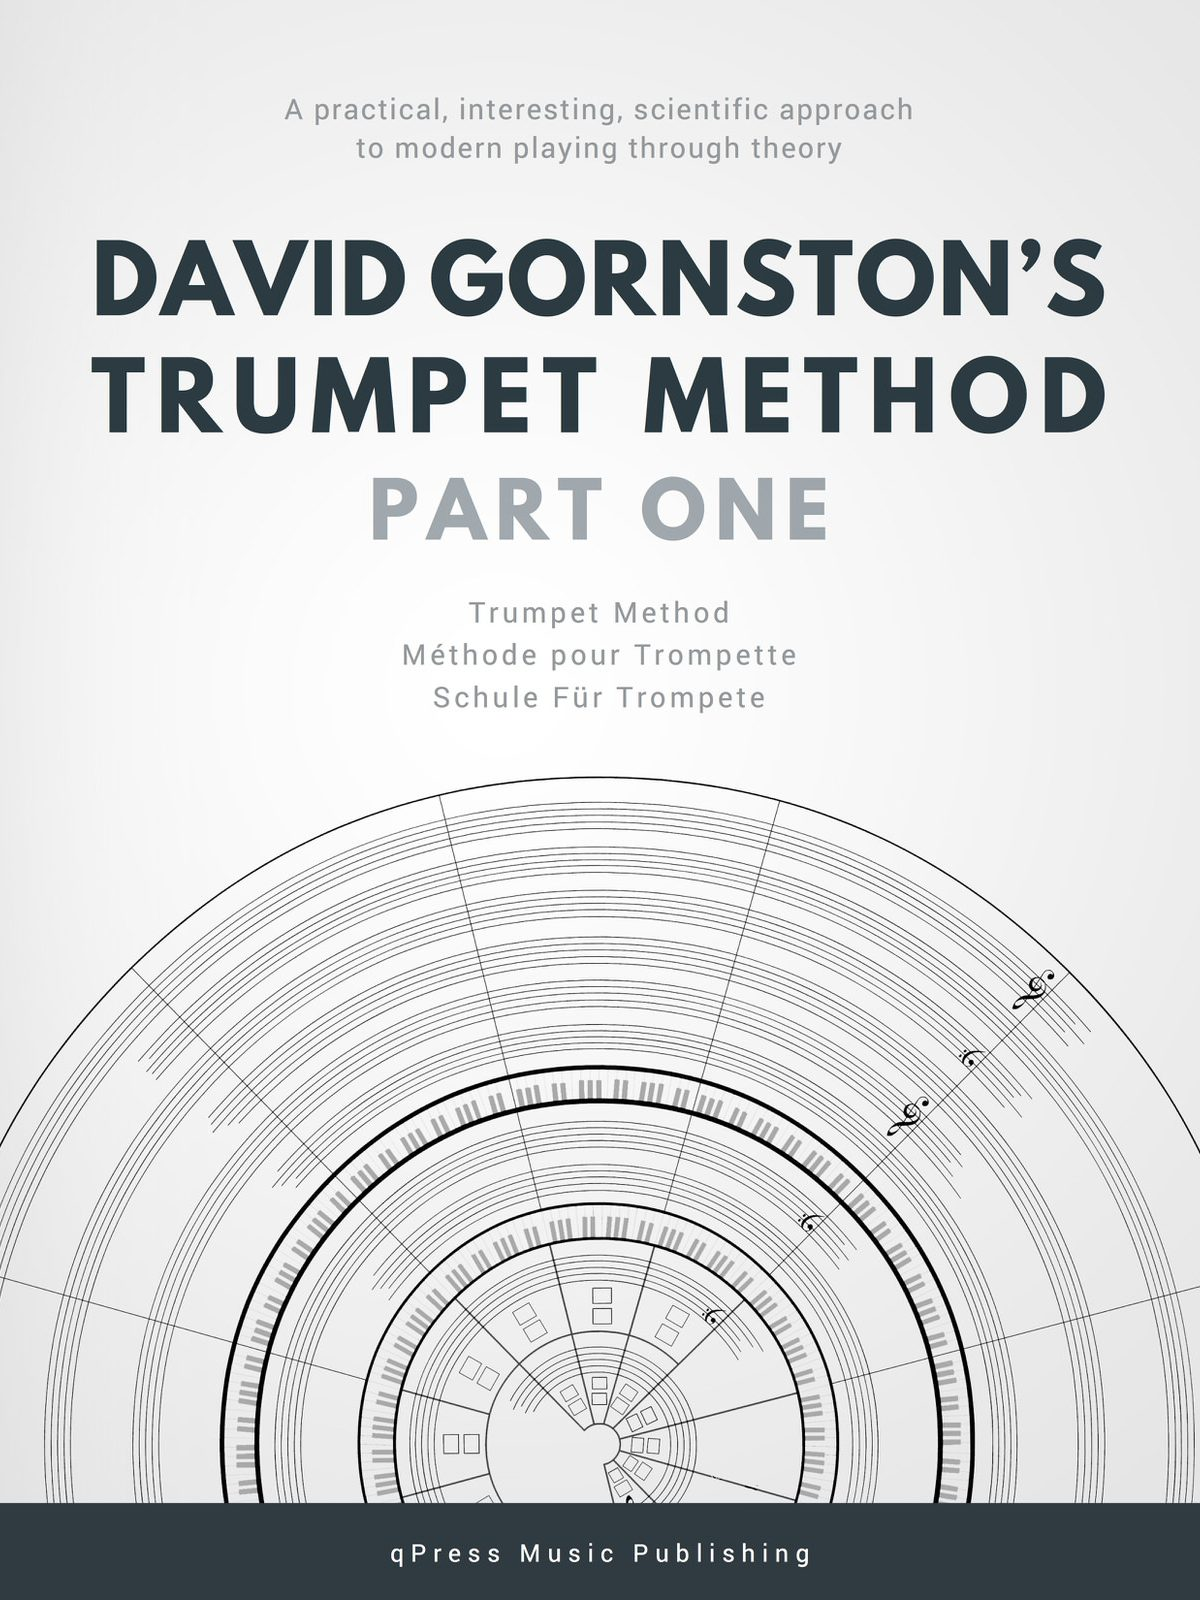 Gornston, Trumpet Method Part 1-p01